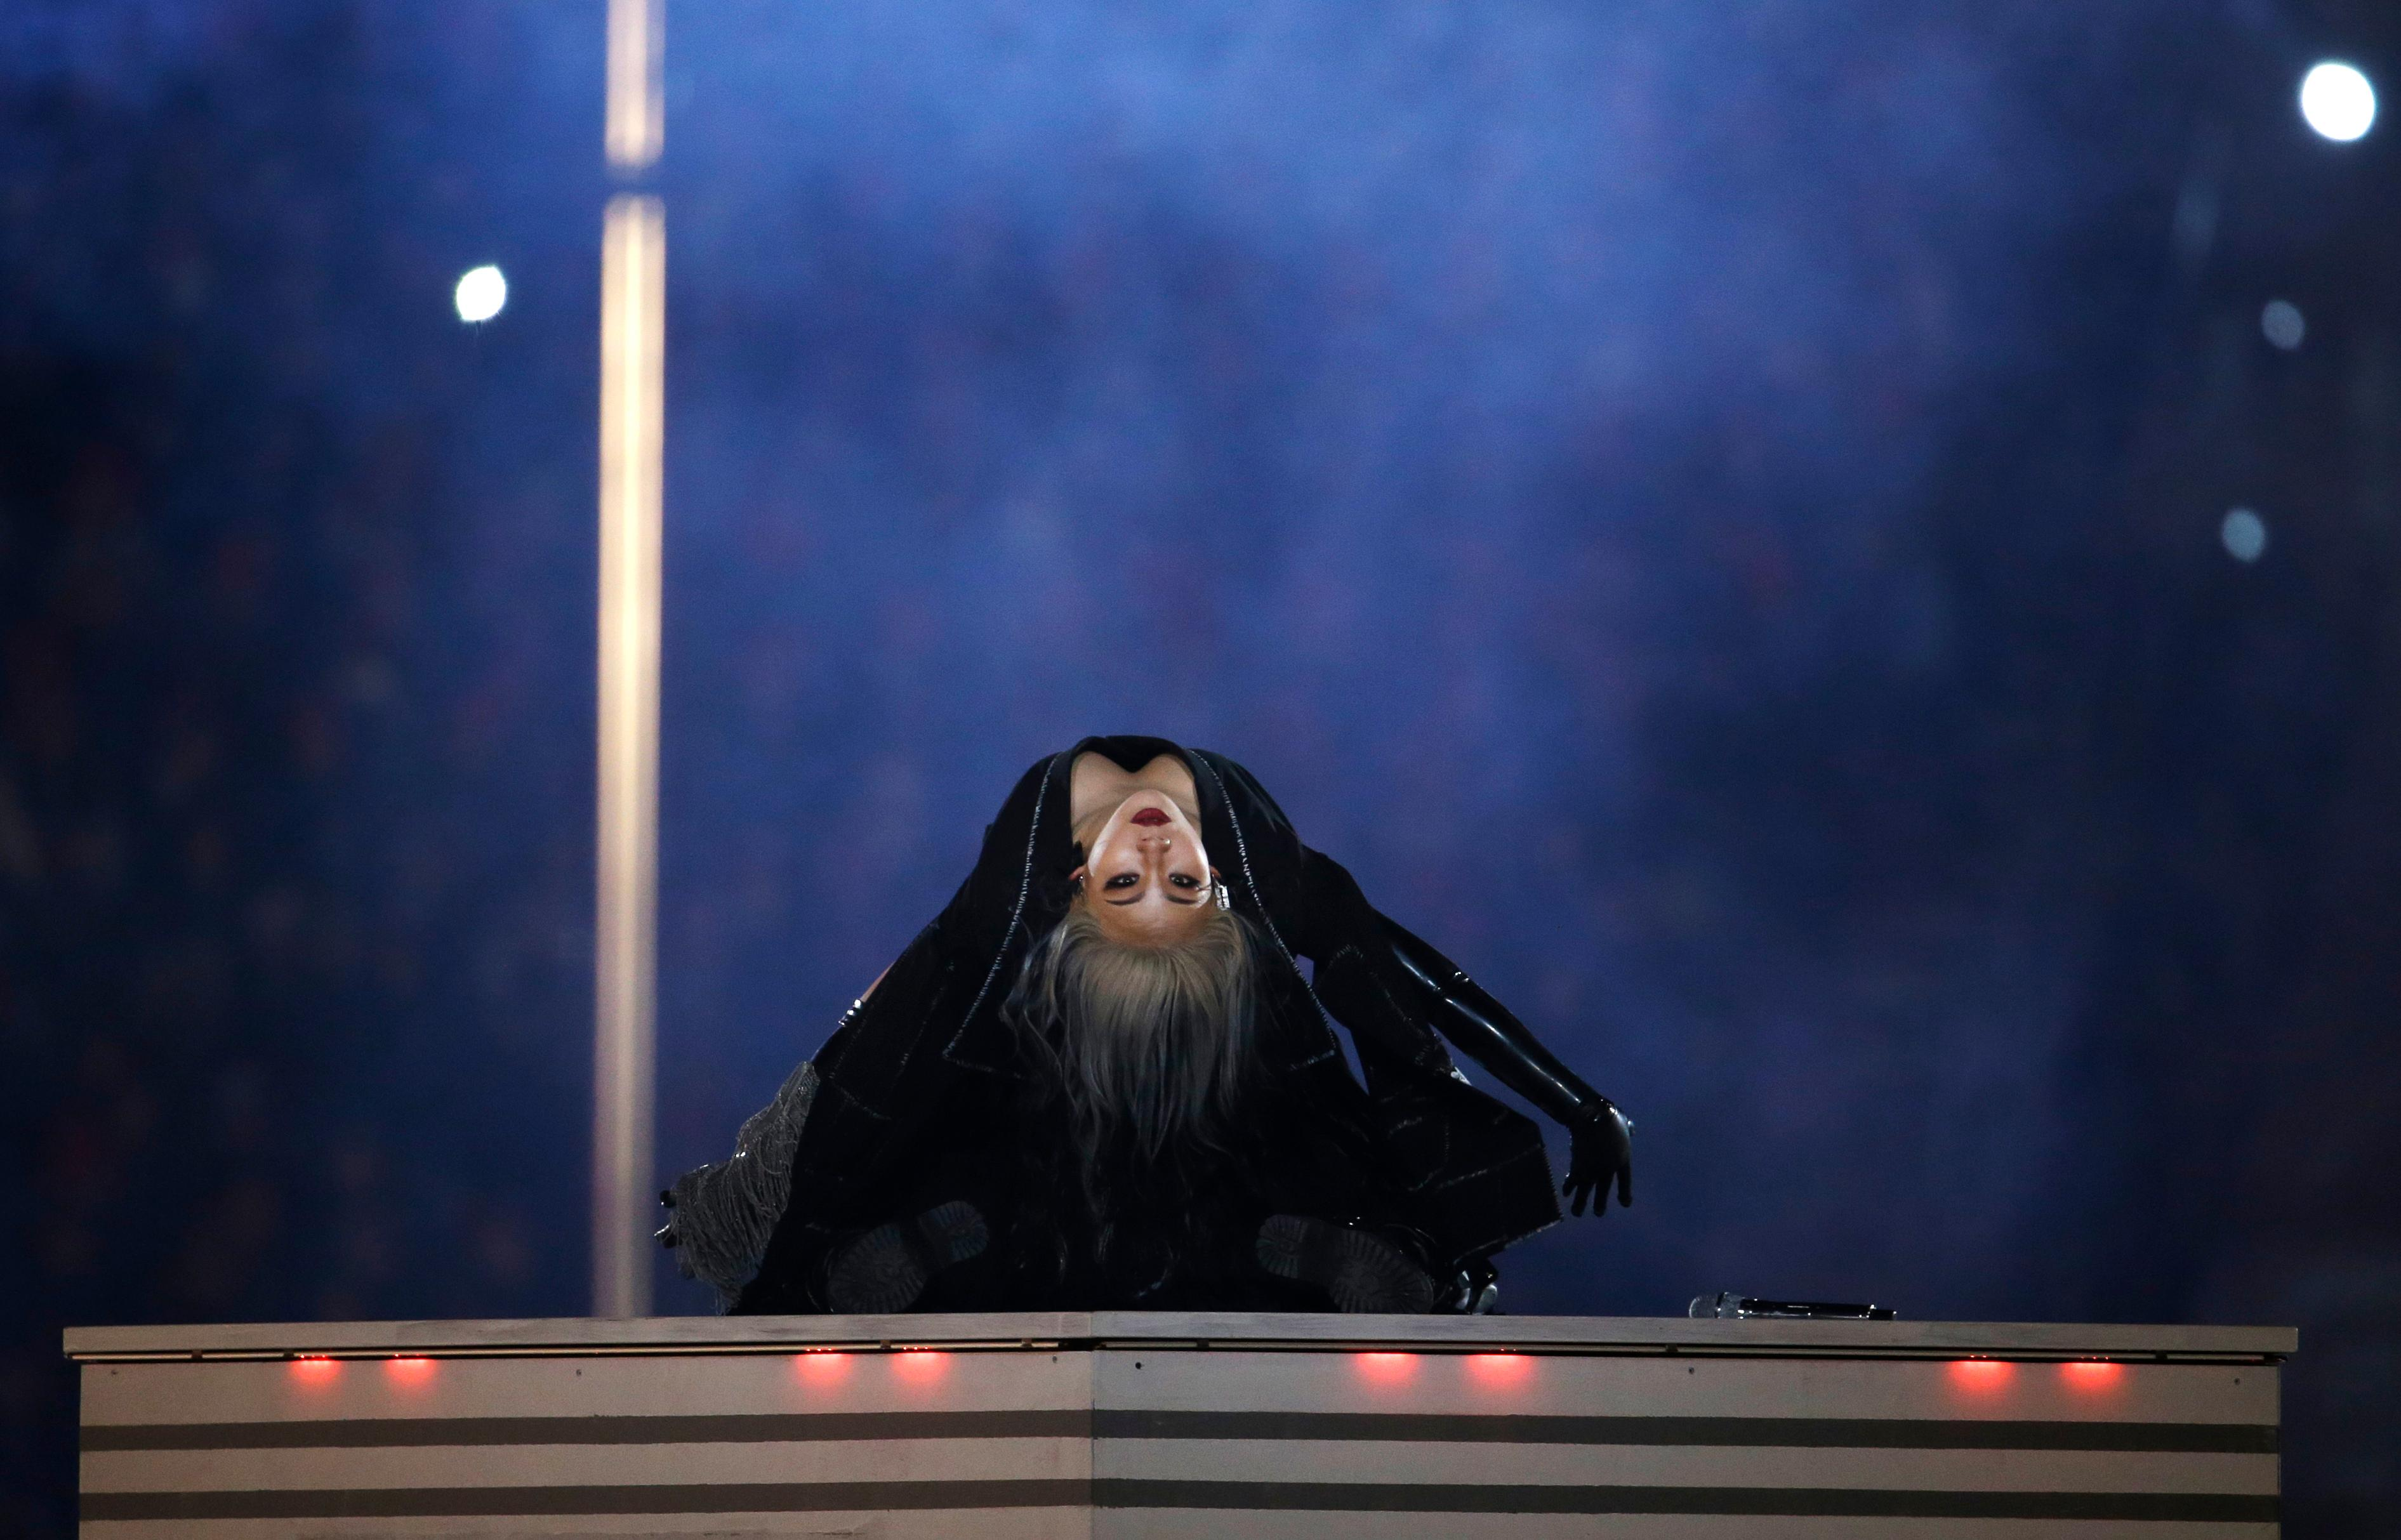 Singer CL performs during the closing ceremony of the 2018 Winter Olympics in Pyeongchang, South Korea, Sunday, Feb. 25, 2018. (AP Photo/Natacha Pisarenko)